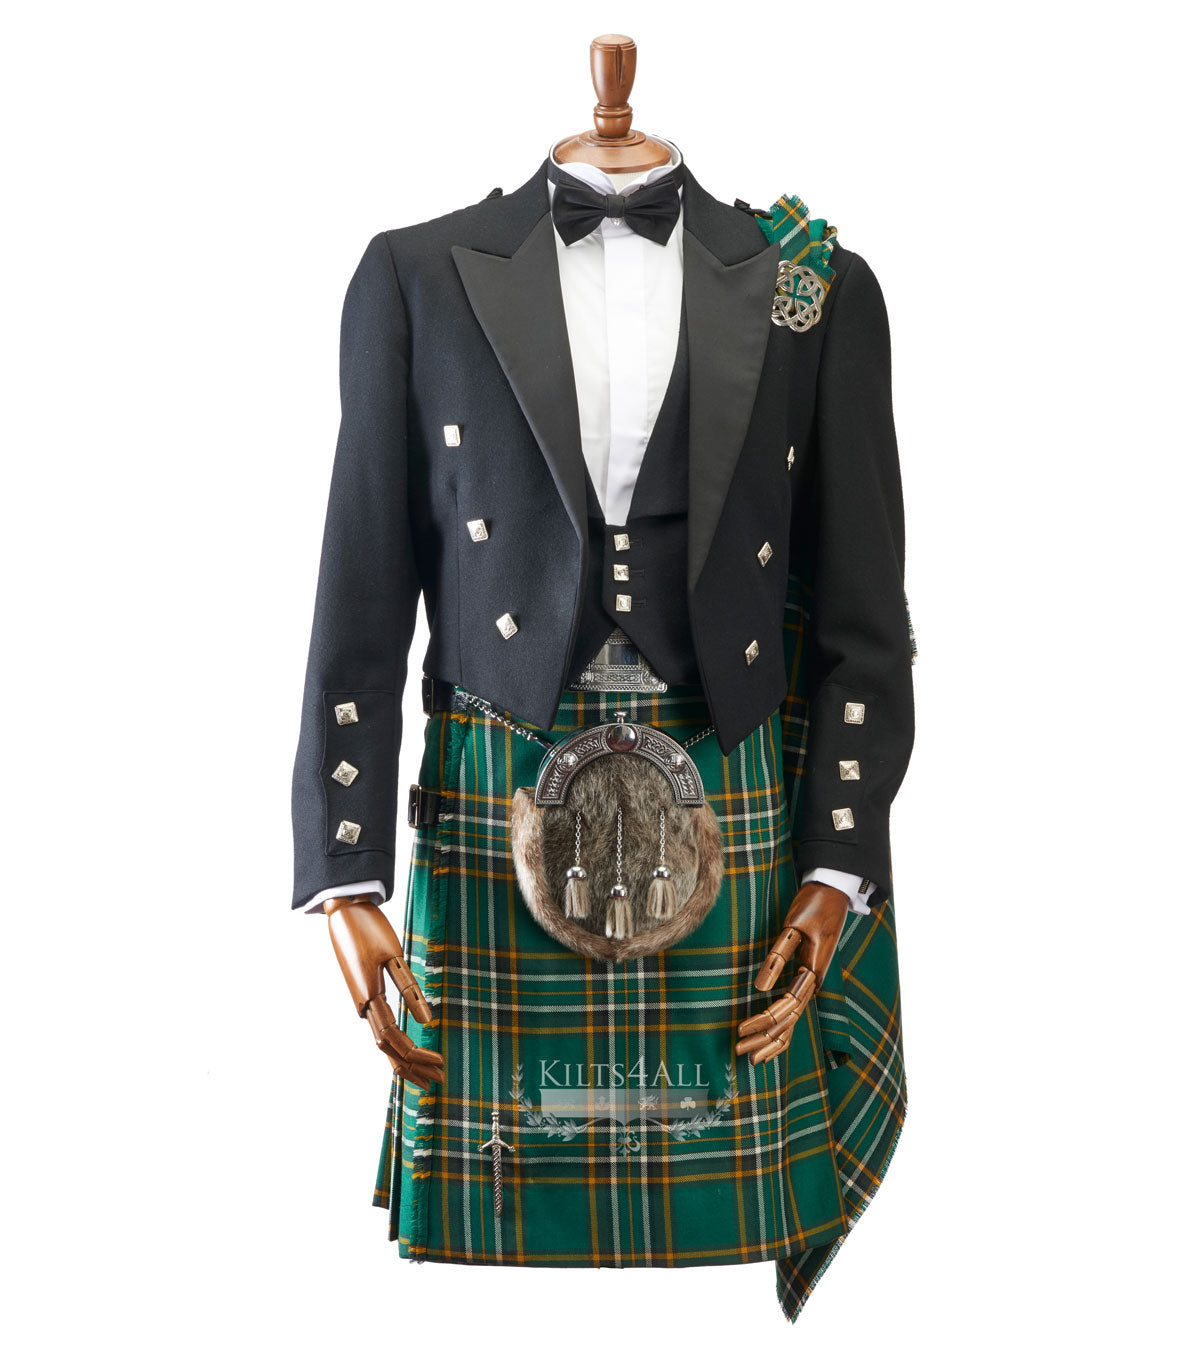 Mens Irish Tartan Kilt Outfit to Hire - Contemporary Blue Argyll Jacket & Waistcoat